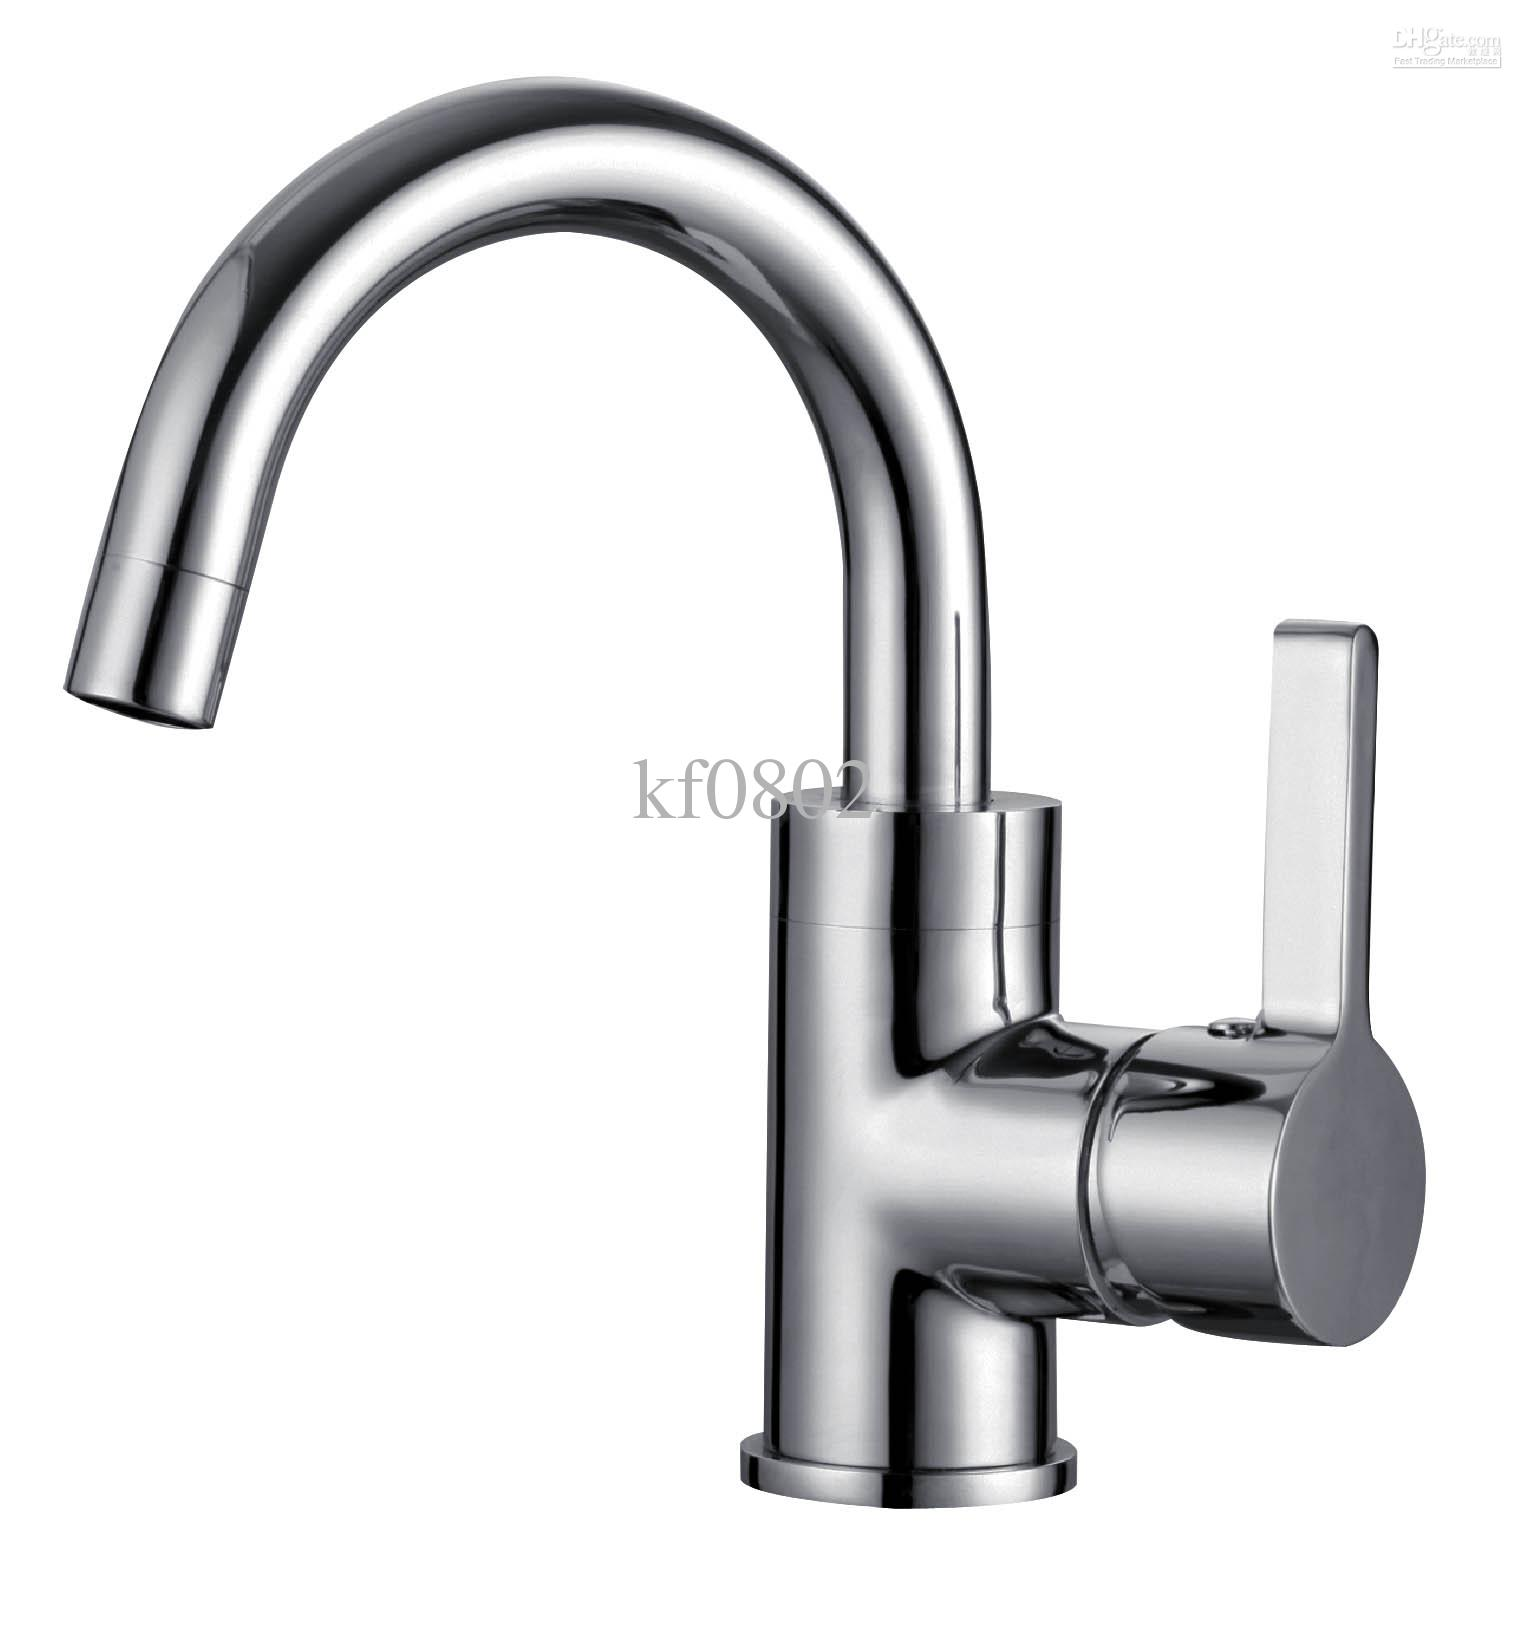 Bathroom Sink Faucet Faucets for bathroom sinks